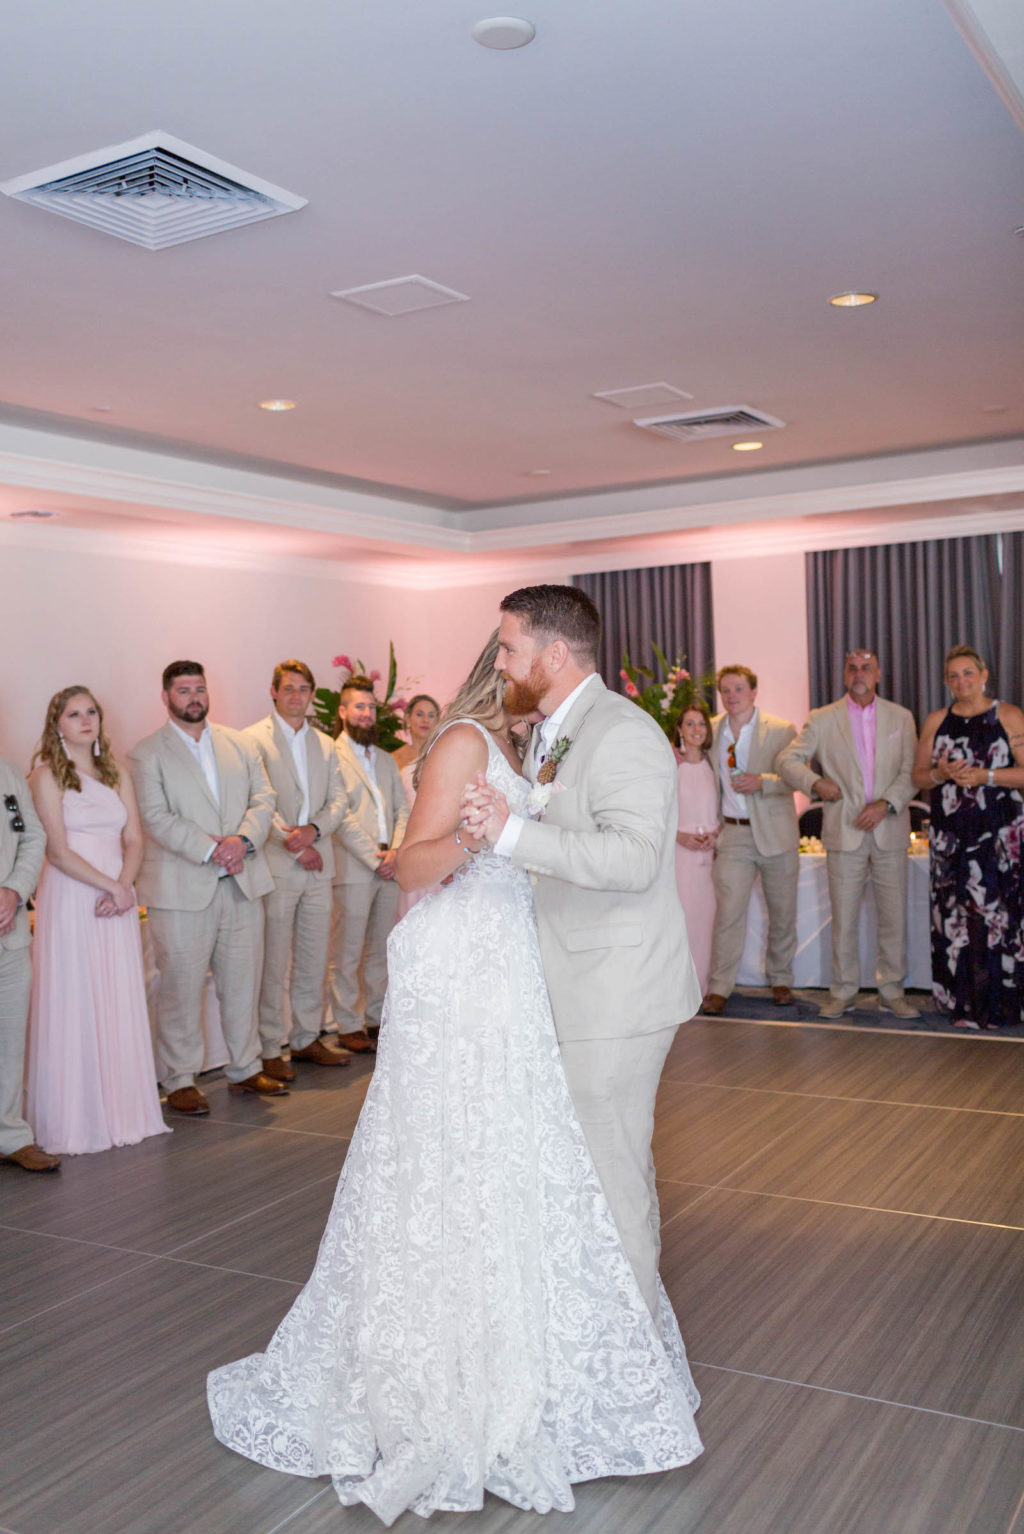 Bride and Groom First Dance at St. Pete Wedding Venue The Don CeSar